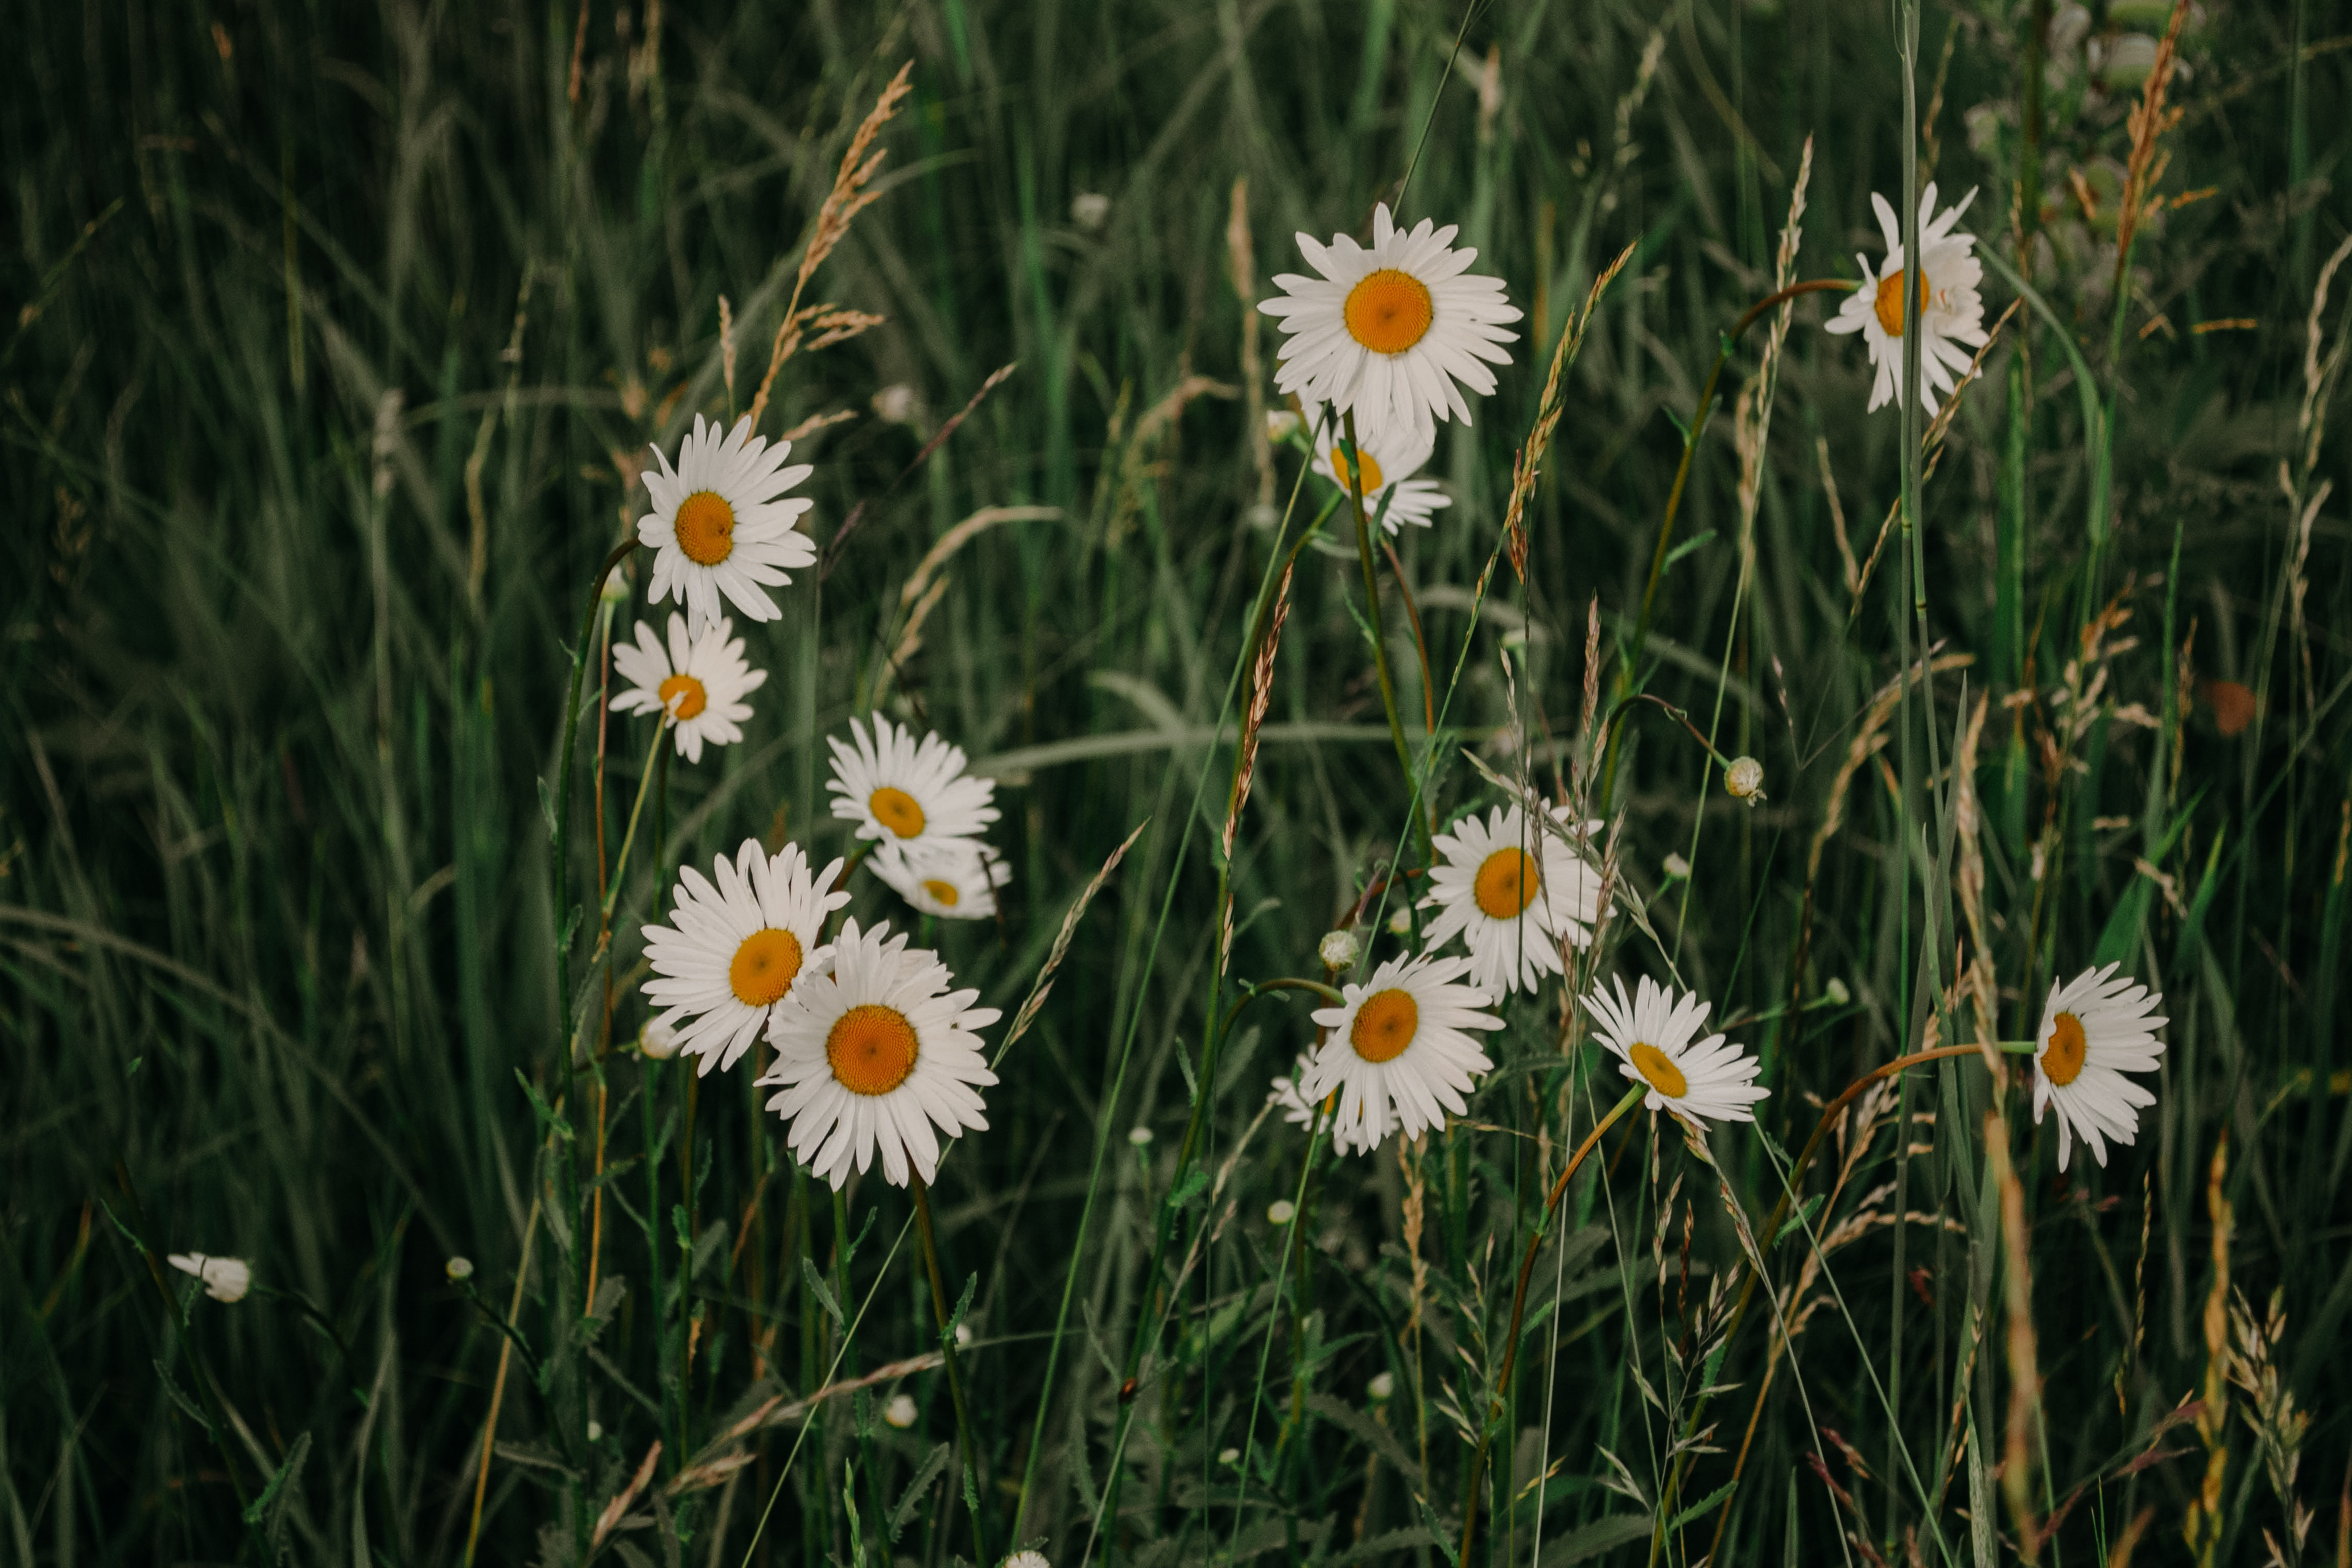 White Daisy Flowers, Garden, Season, Plants, Mother nature, HQ Photo